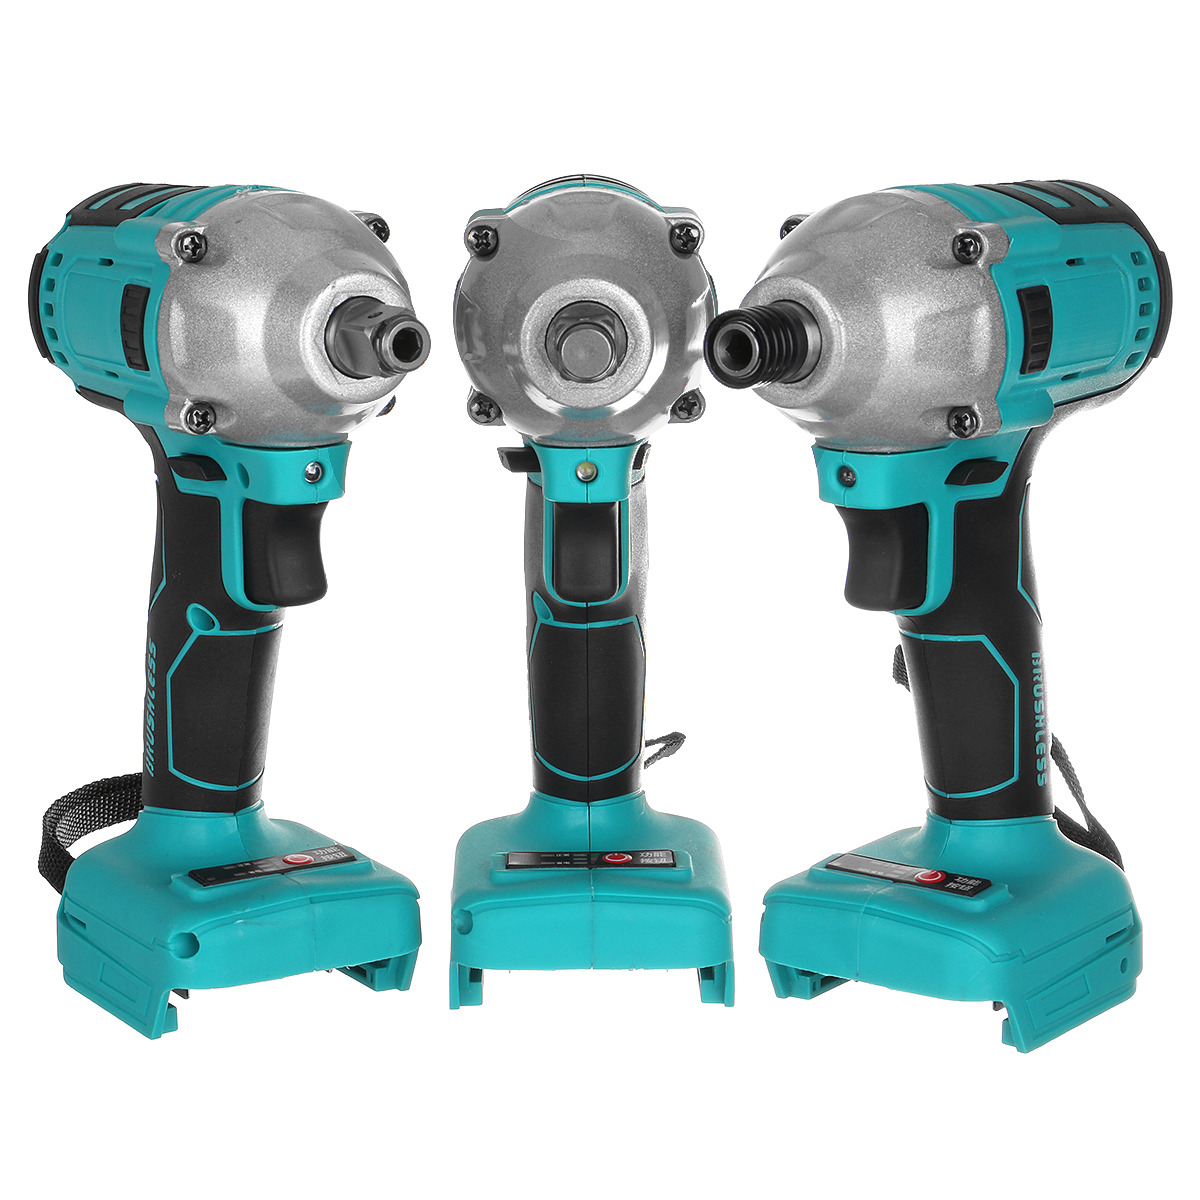 Blue Cordless Brushless Impact Wrench Drill Drive Machine for Makita 18V Battery